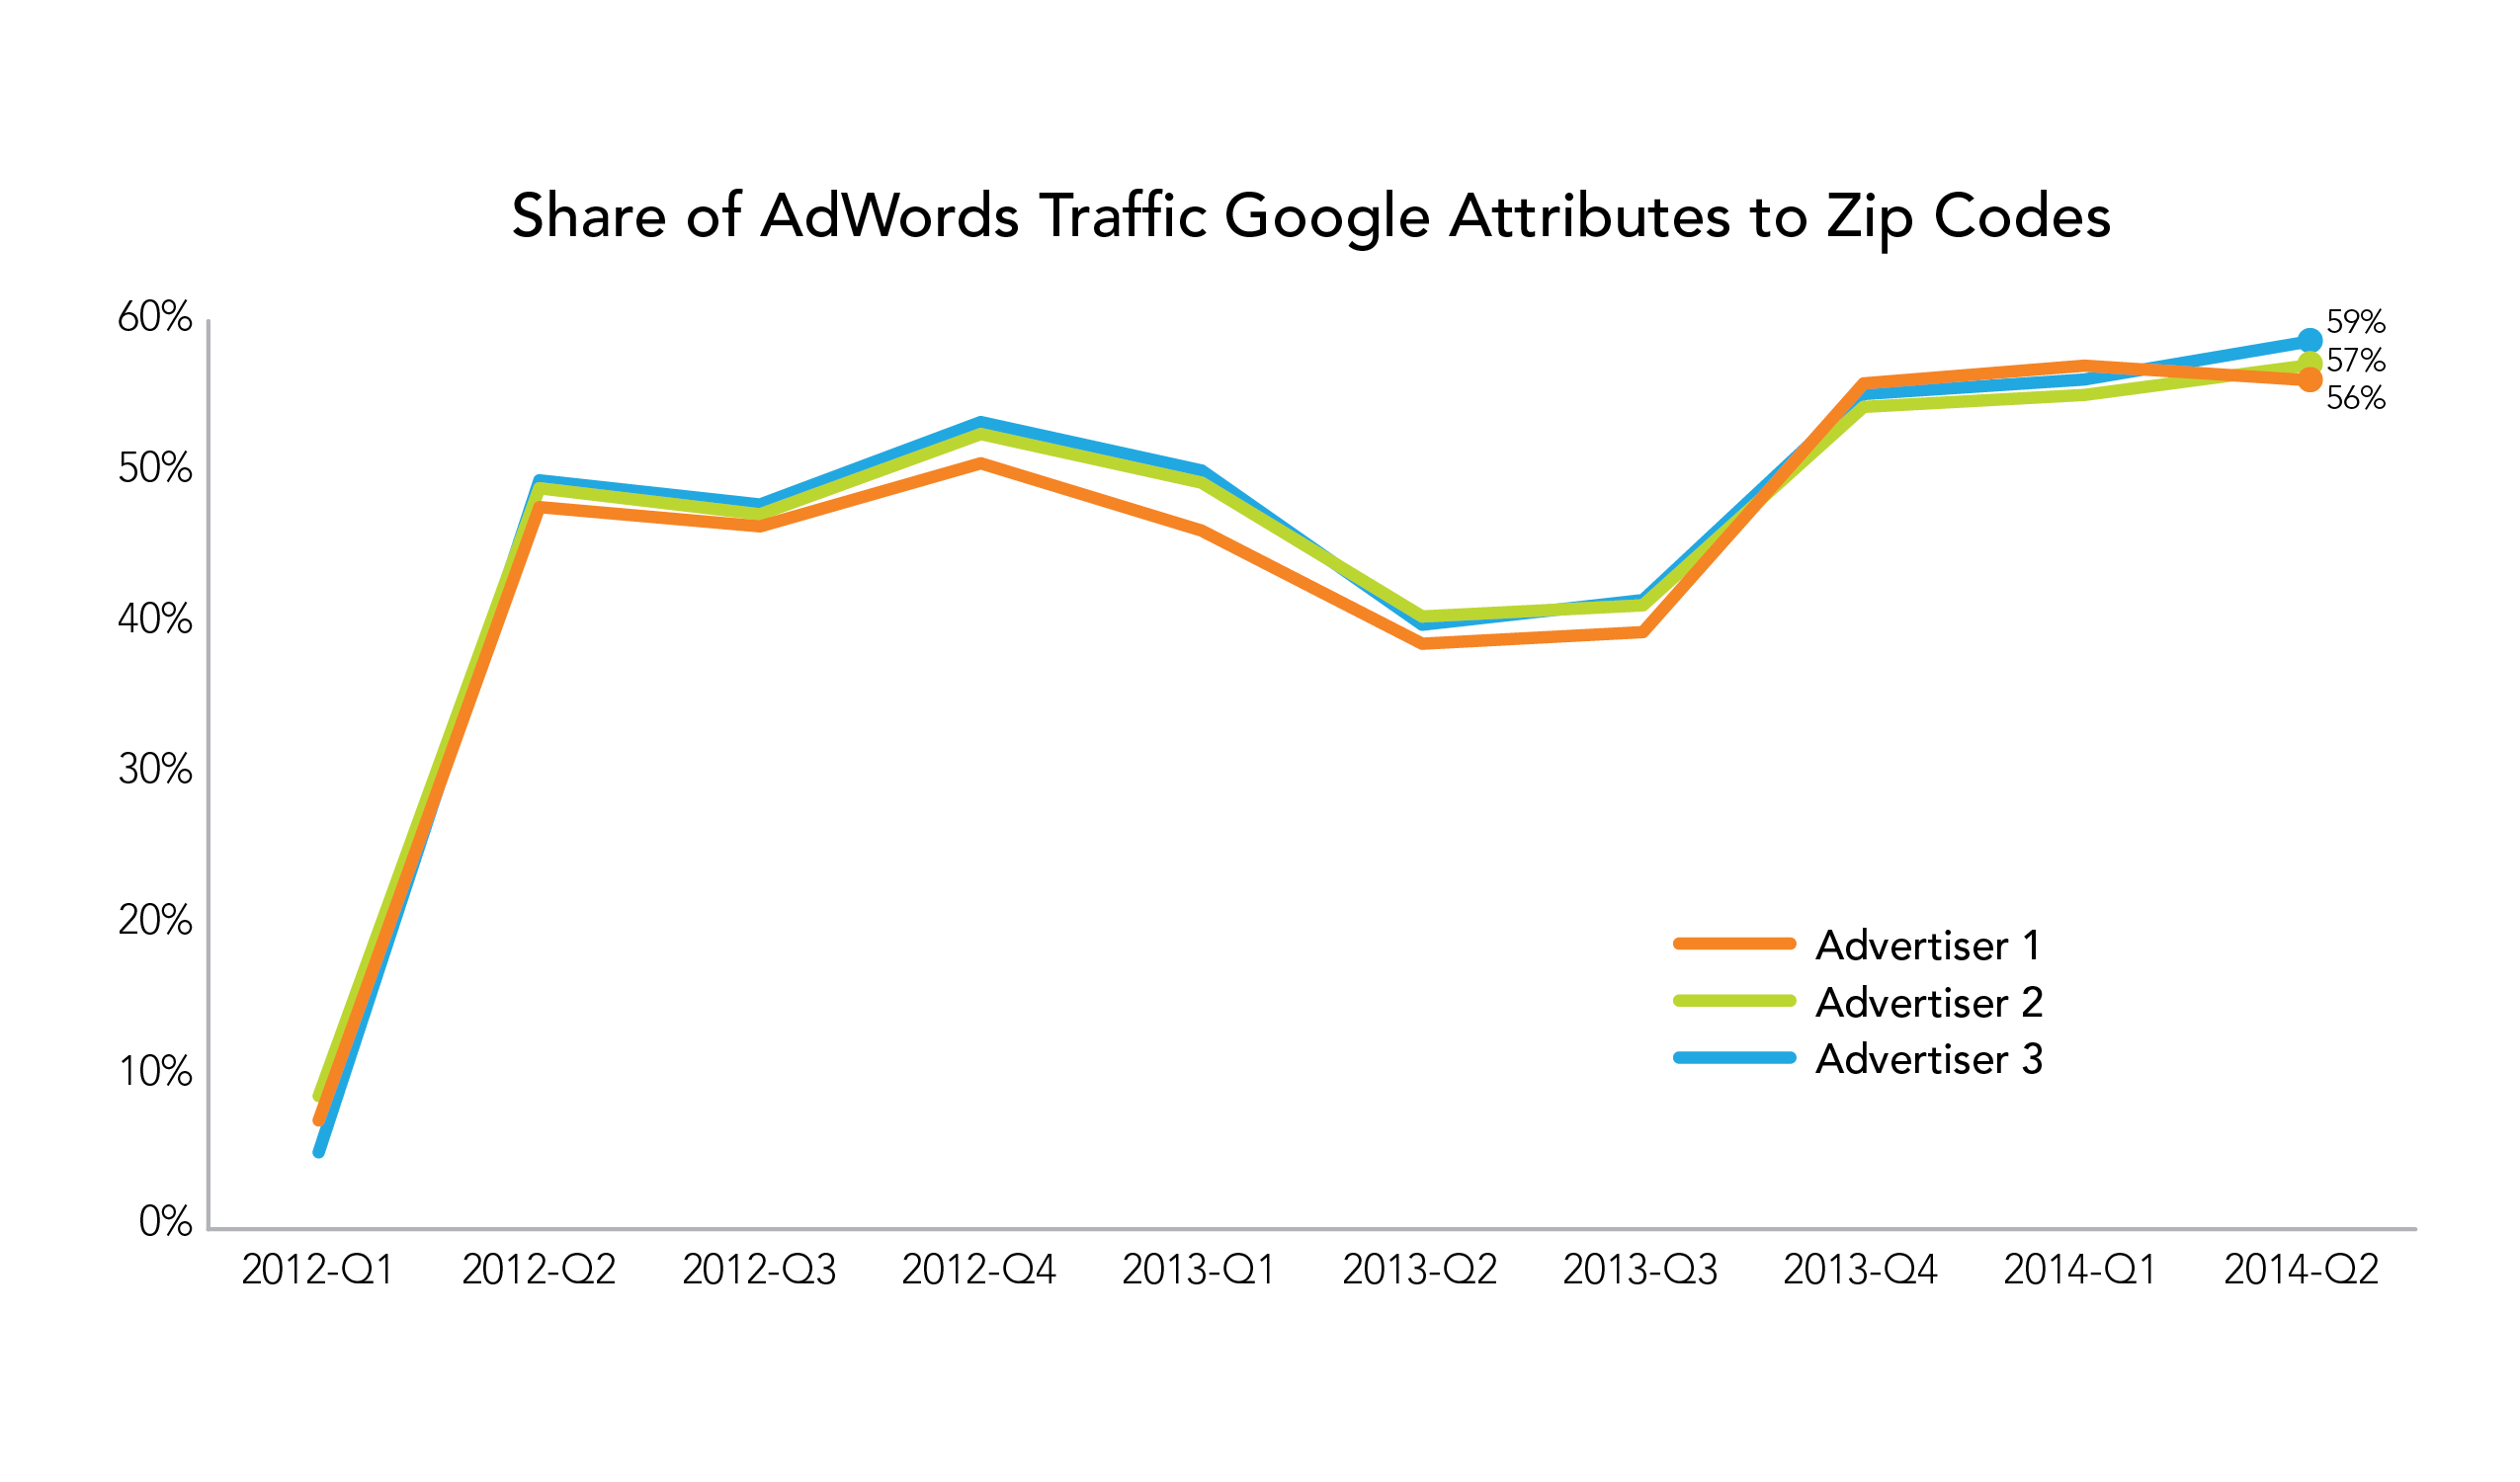 Share of AdWordsTraffic Google Attributes to Zip Codes